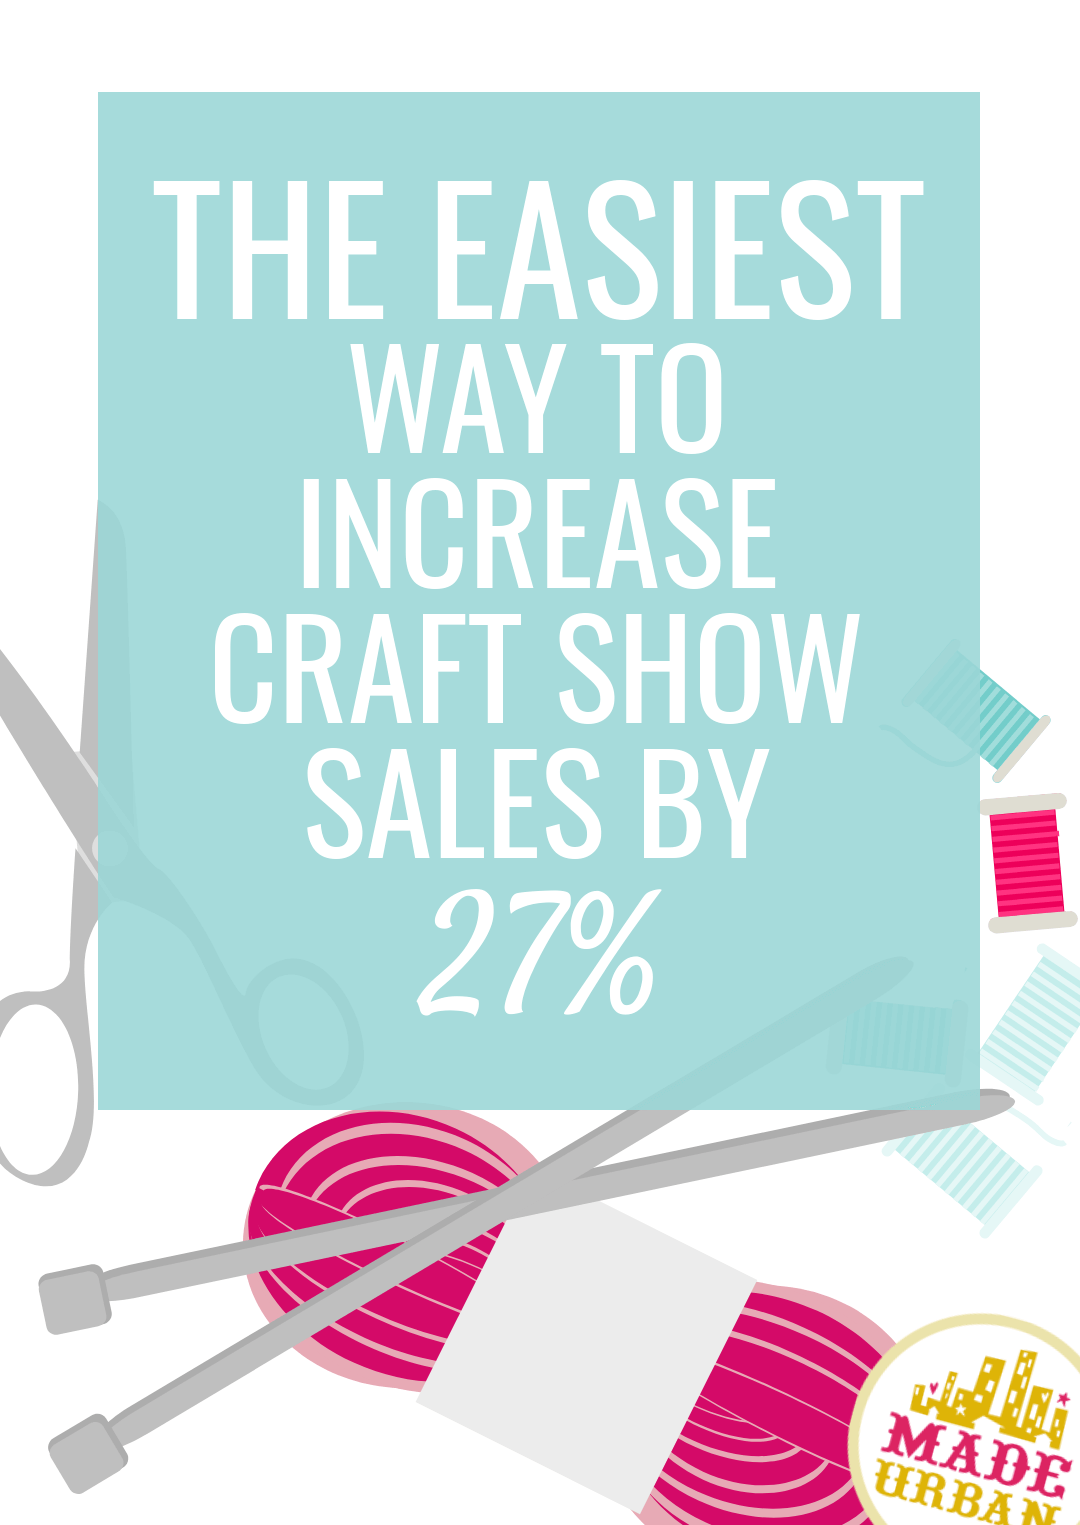 The Easiest Way to Increase Craft Show Sales by 27%